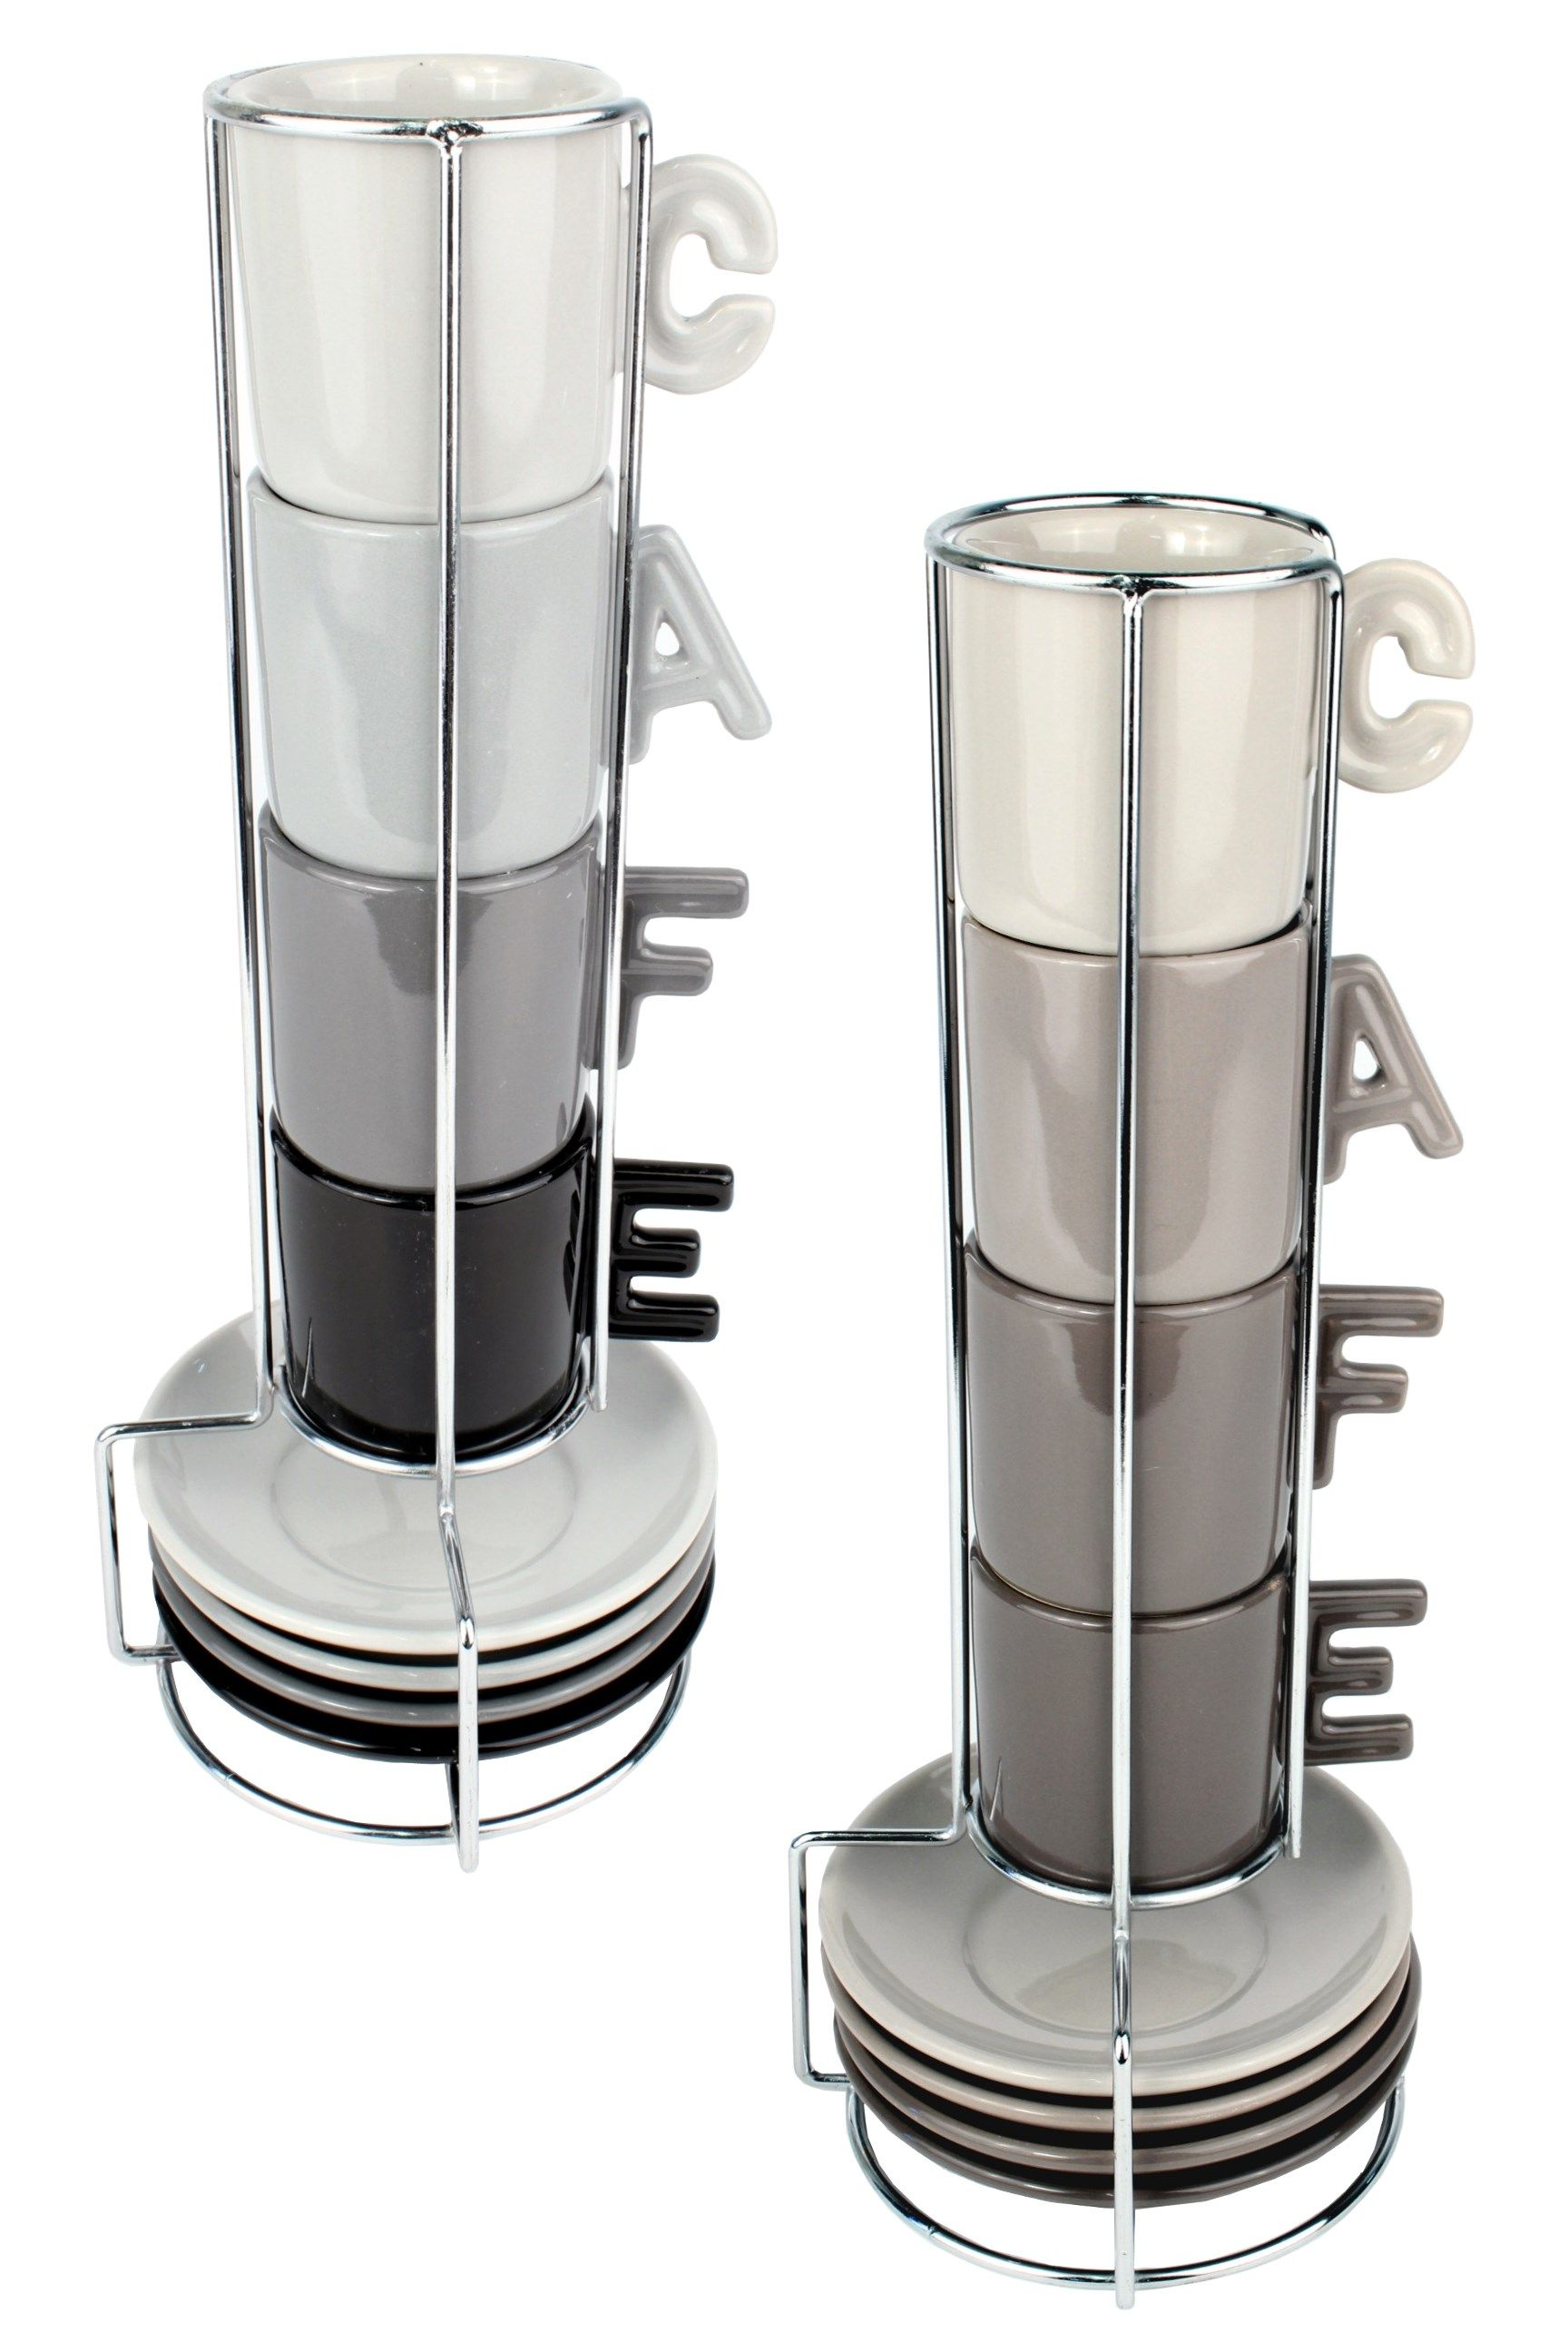 Espresso Cup Amp Saucer Set With Stand Coffee Mug Tower Set